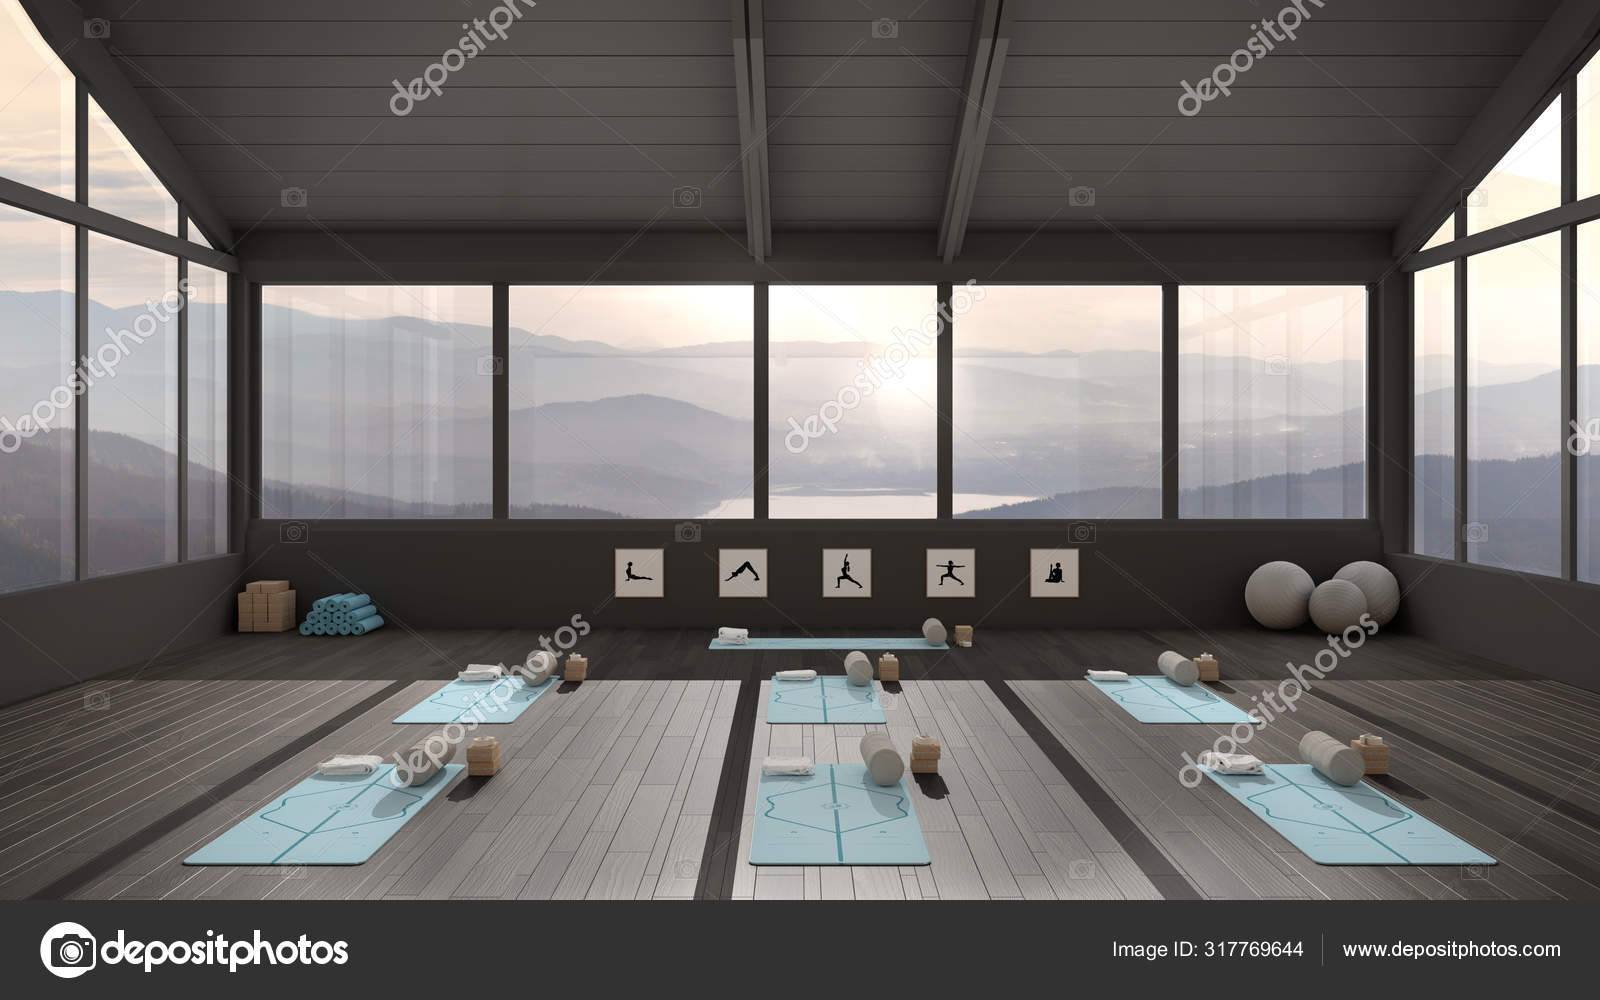 Empty Yoga Studio Interior Design Architecture Minimal Open Space Spatial Organization With Mats And Accessories Ready For Yoga Practice Panoramic Window With Lake Panorama Stock Photo C Archiviz 317769644